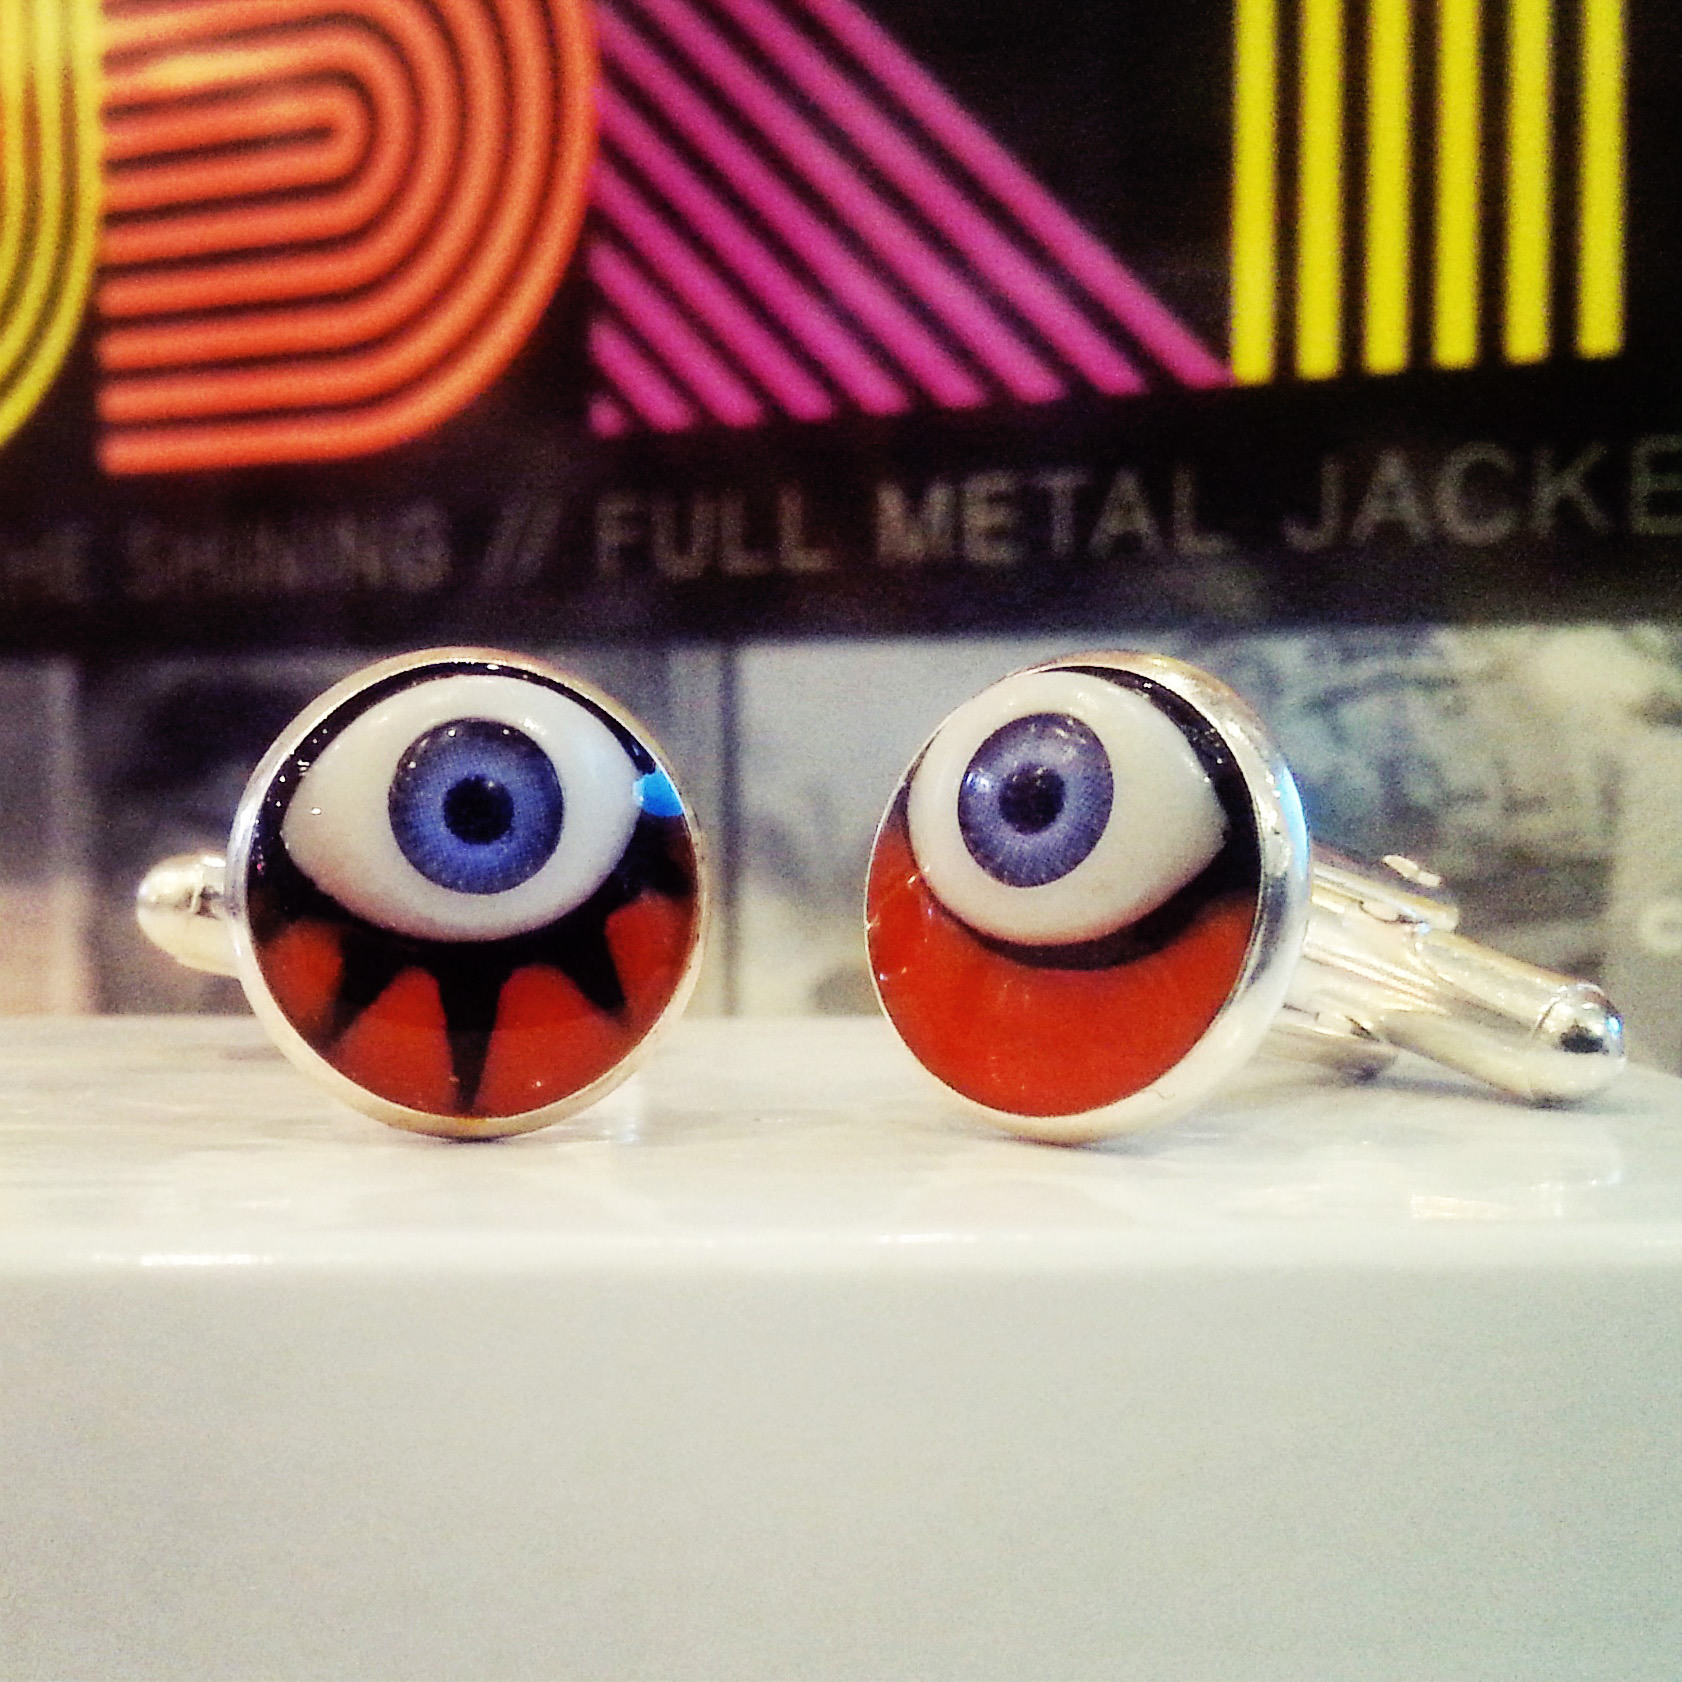 A Clockwork Orange Cufflinks